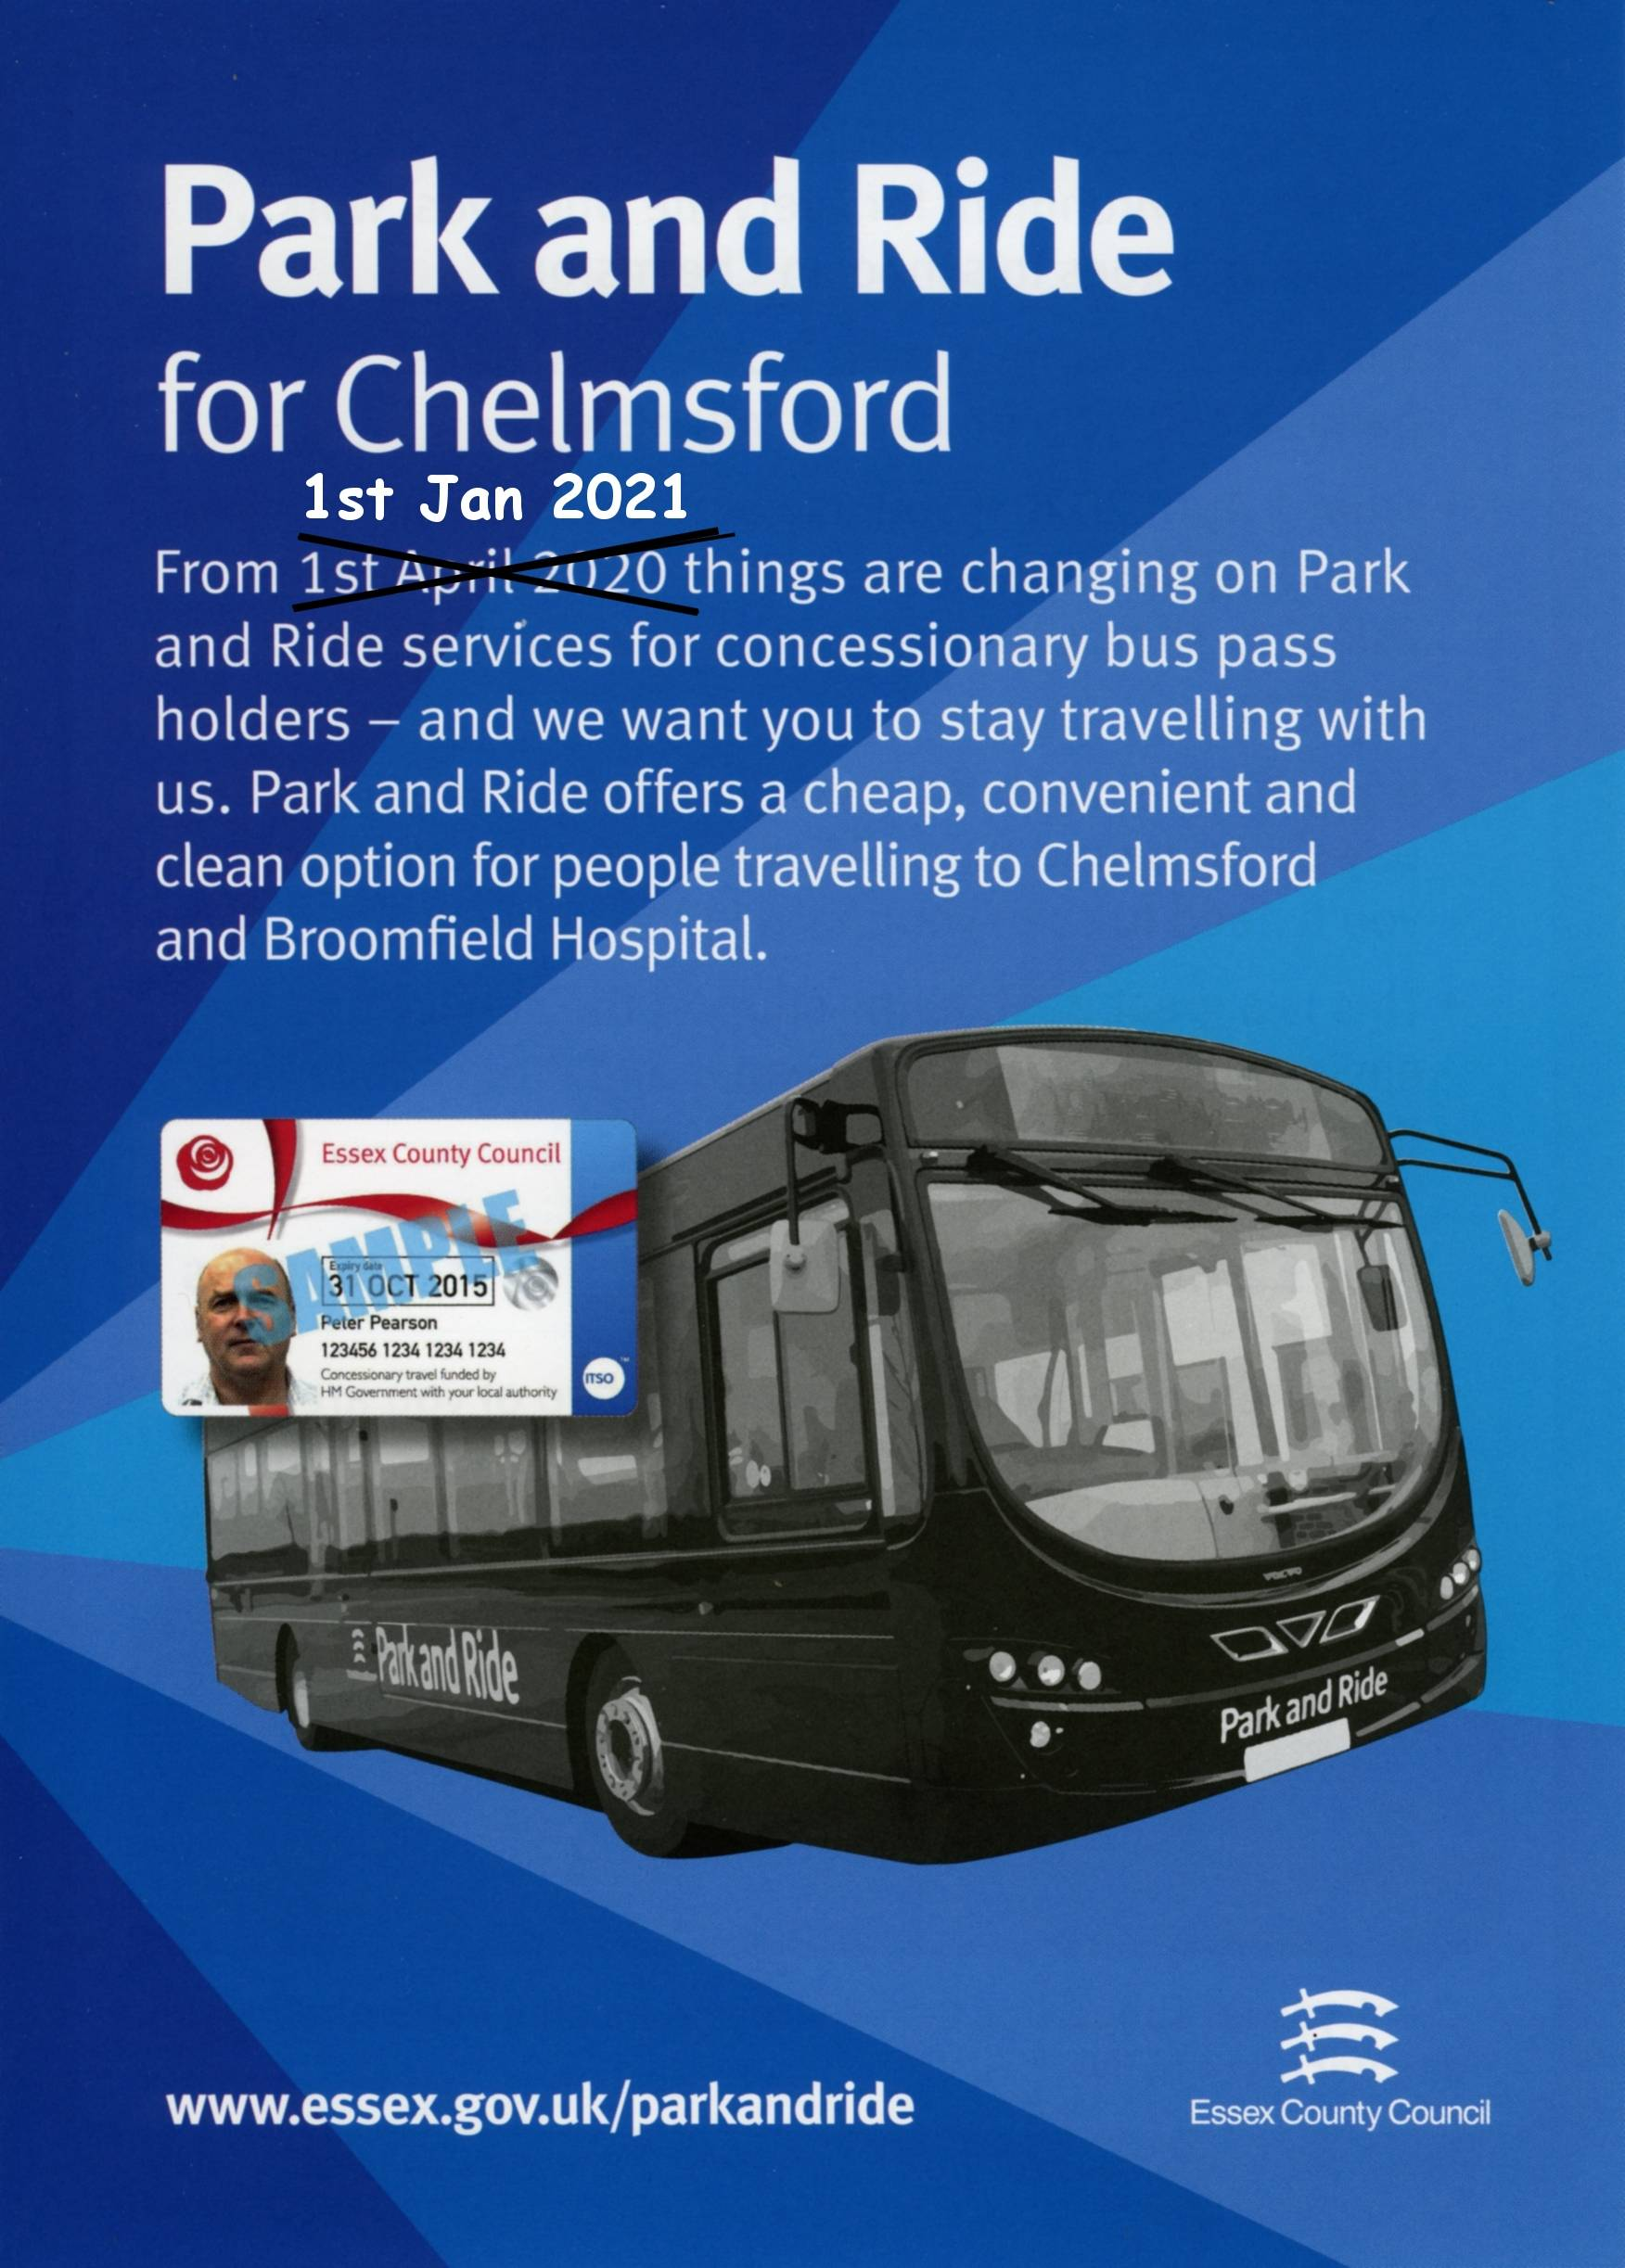 Nov 2020 - Update to the Changes to Chelmsford Park and Ride for concessions